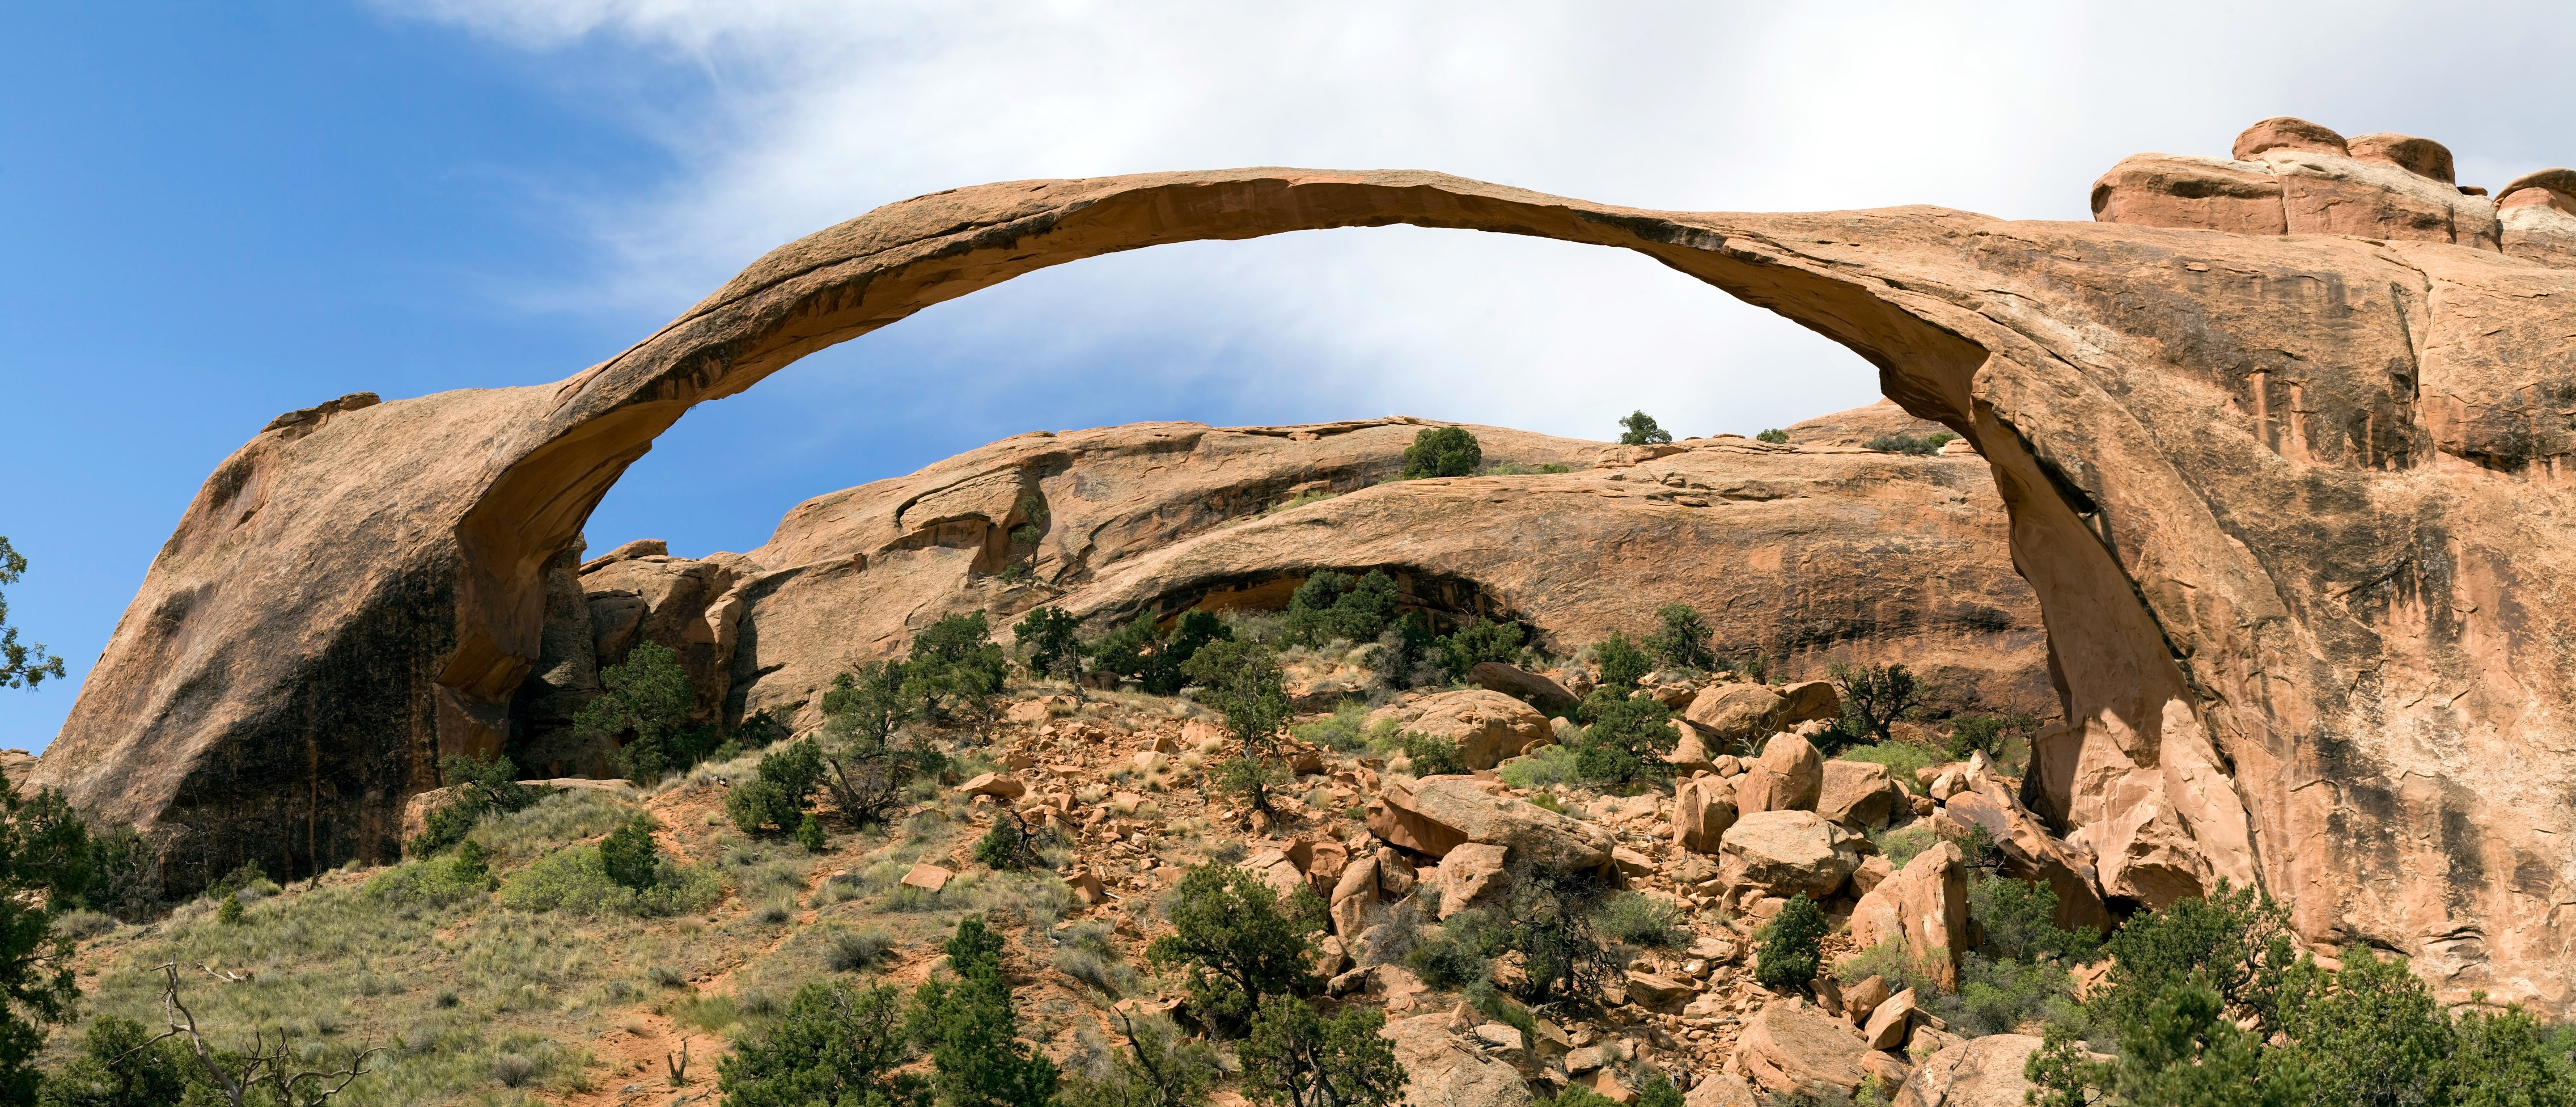 5 Fun Things to Do and See in St. George, Utah